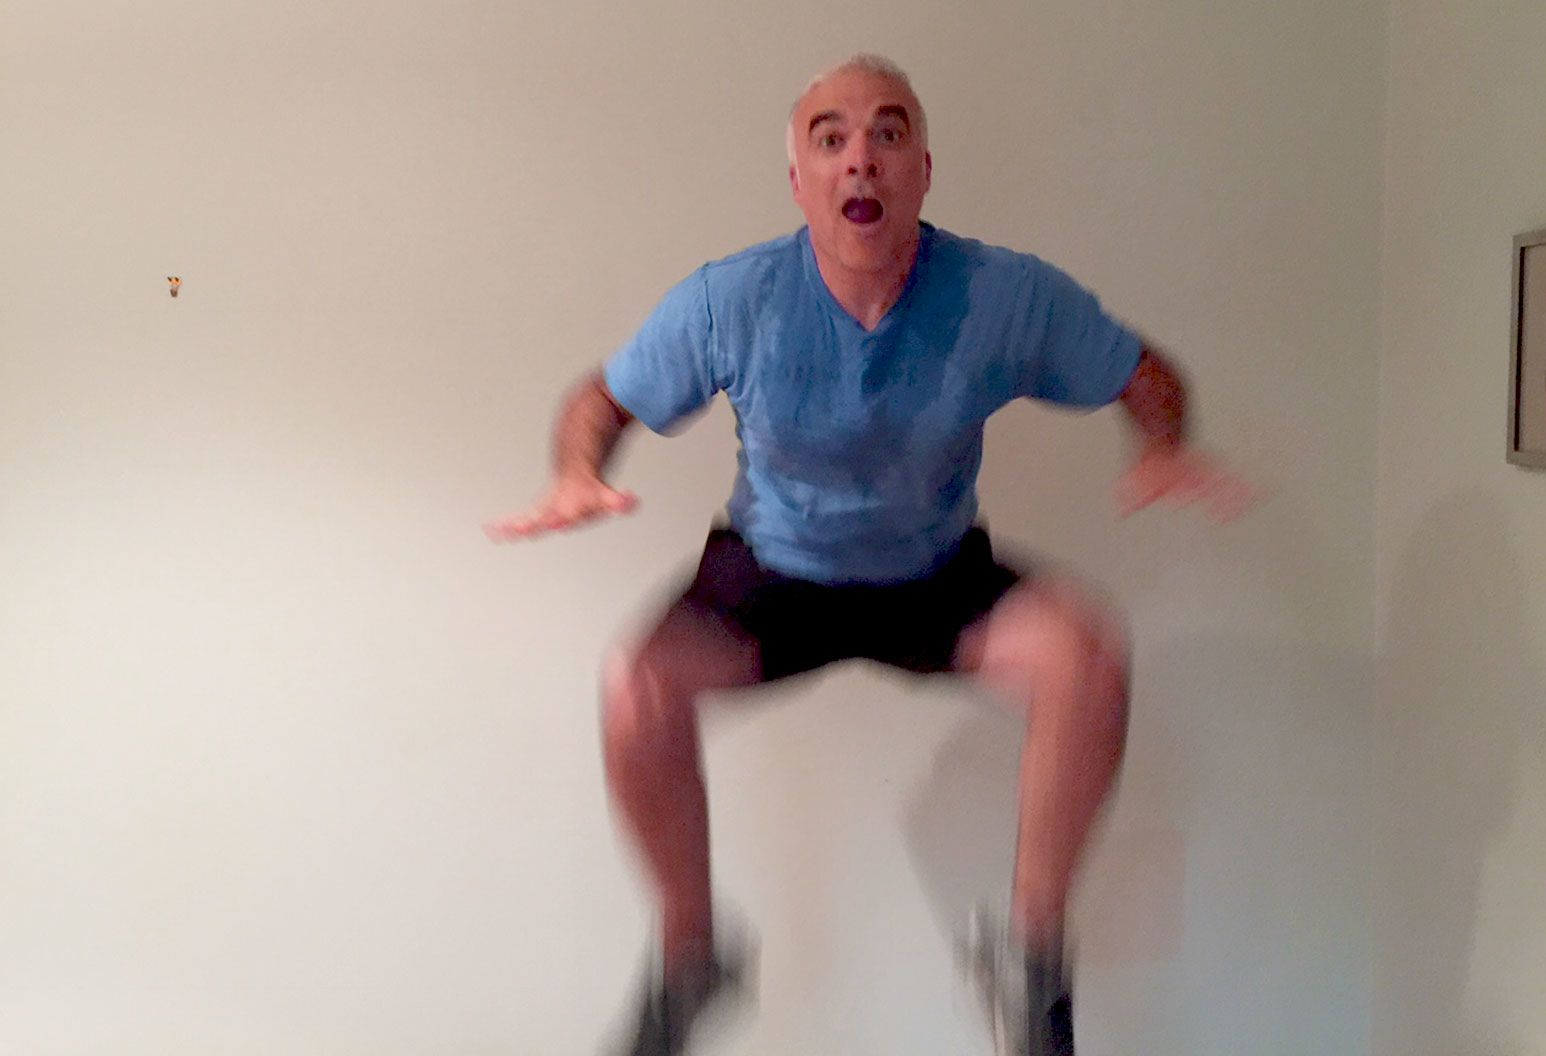 A man with short white hair in a sweaty blue shirt and black shorts is jumping so his hands can touch his knees.